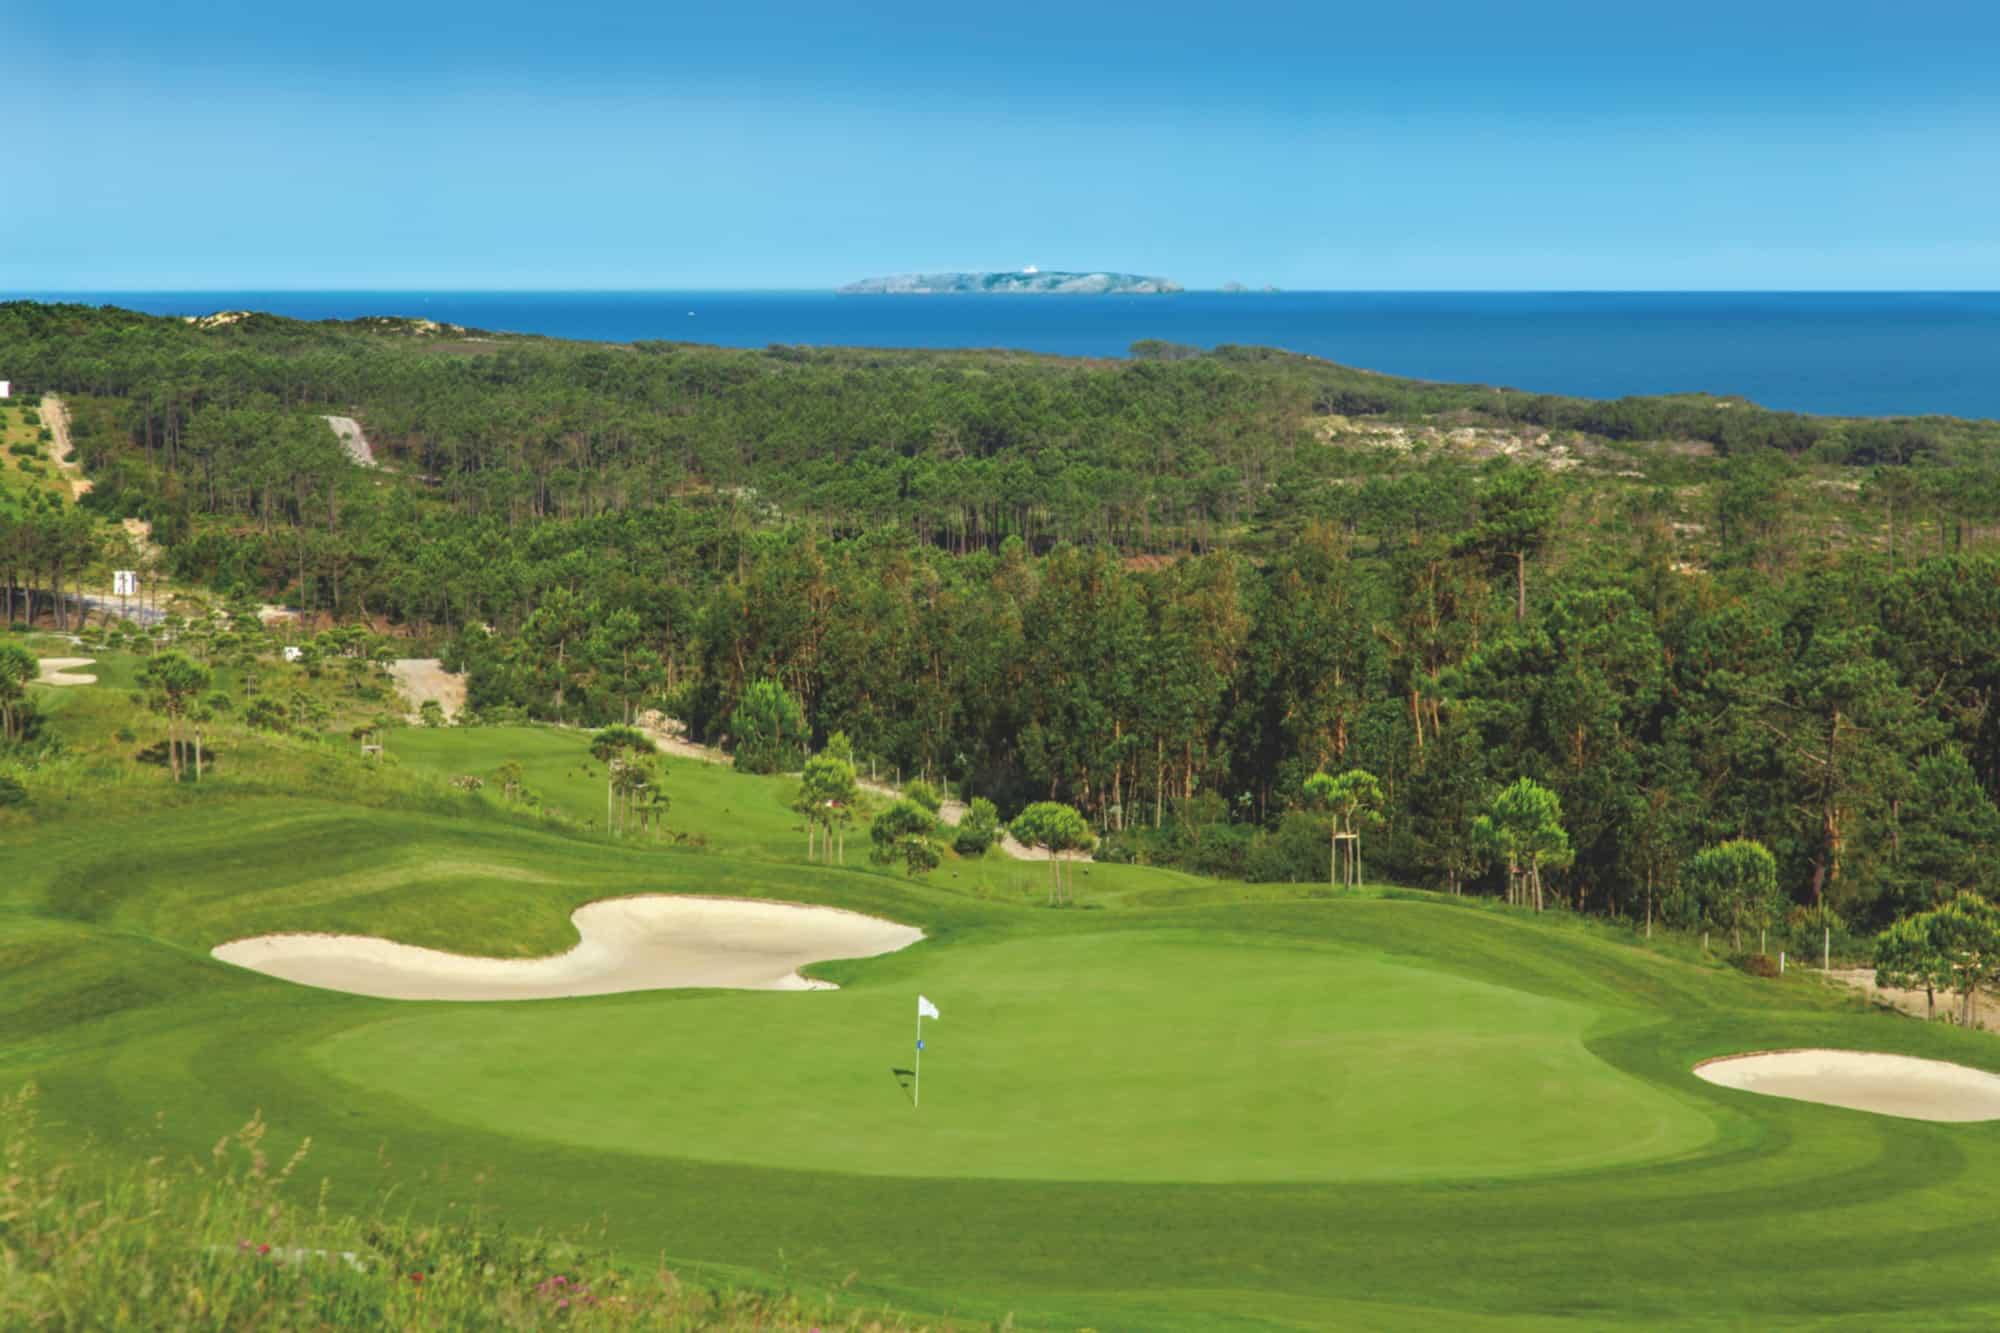 Royal Óbidos - Hole 8